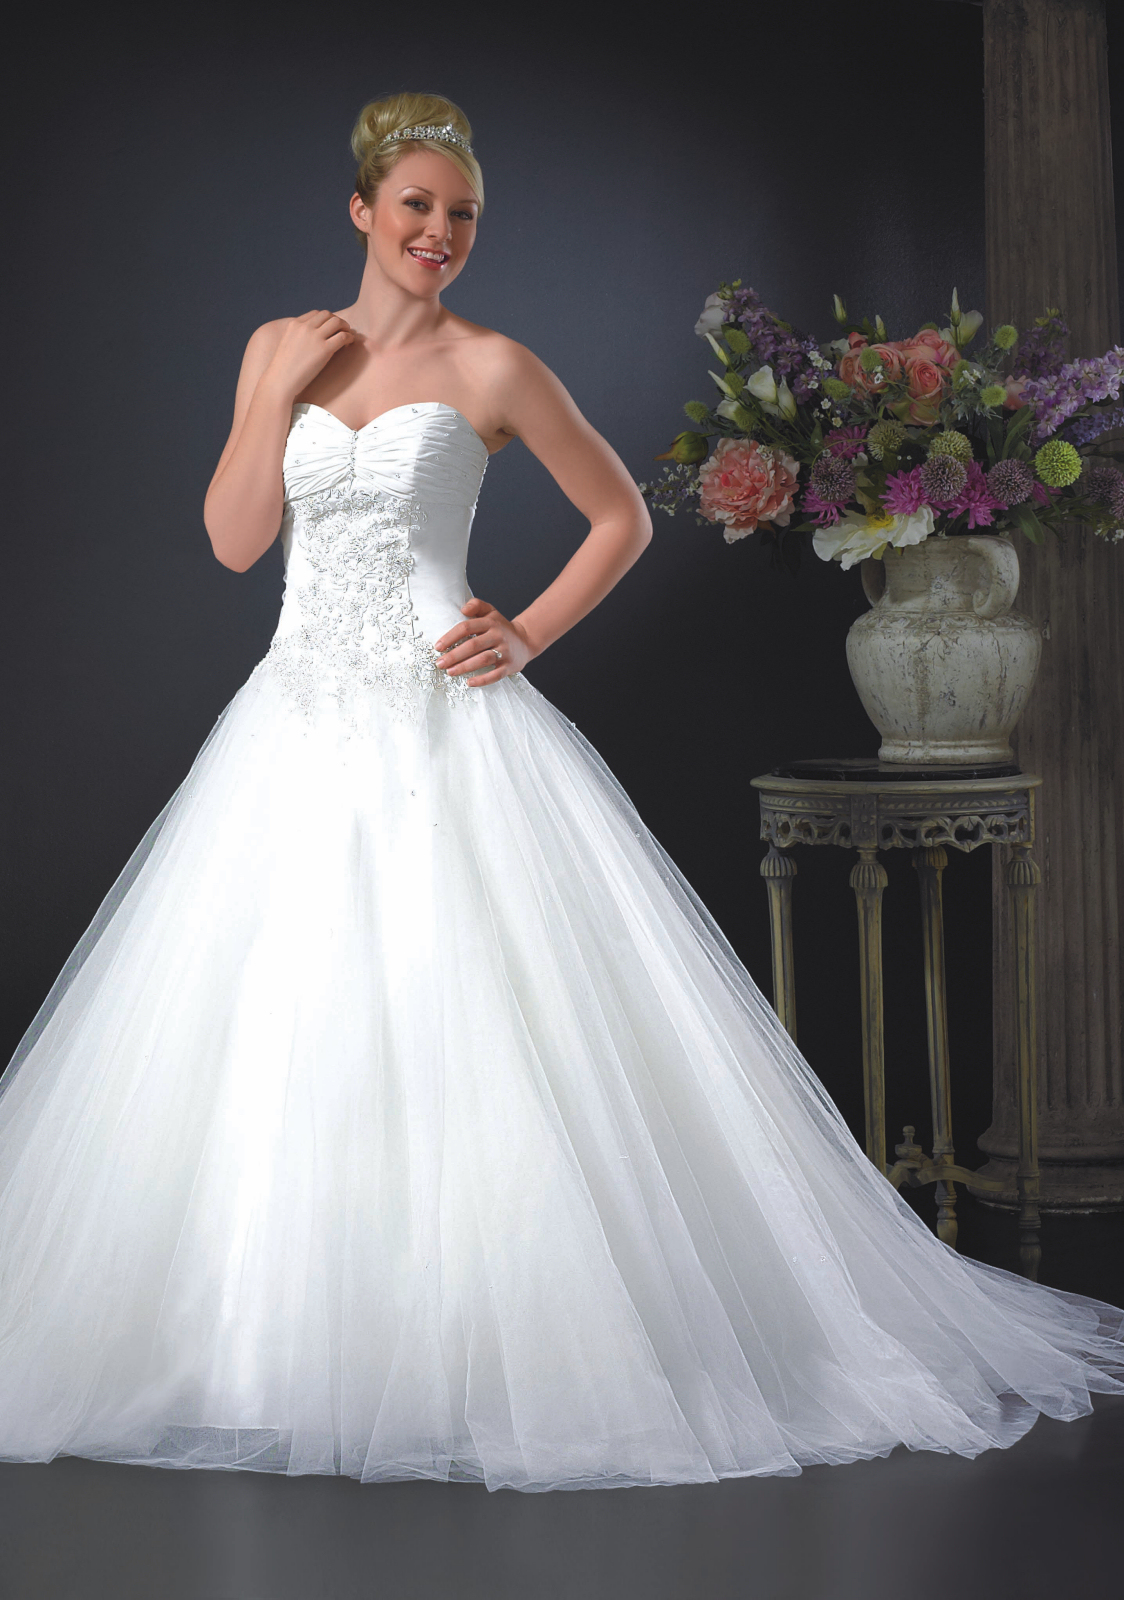 Phoenix Wedding Gowns- Rose Tuxedo